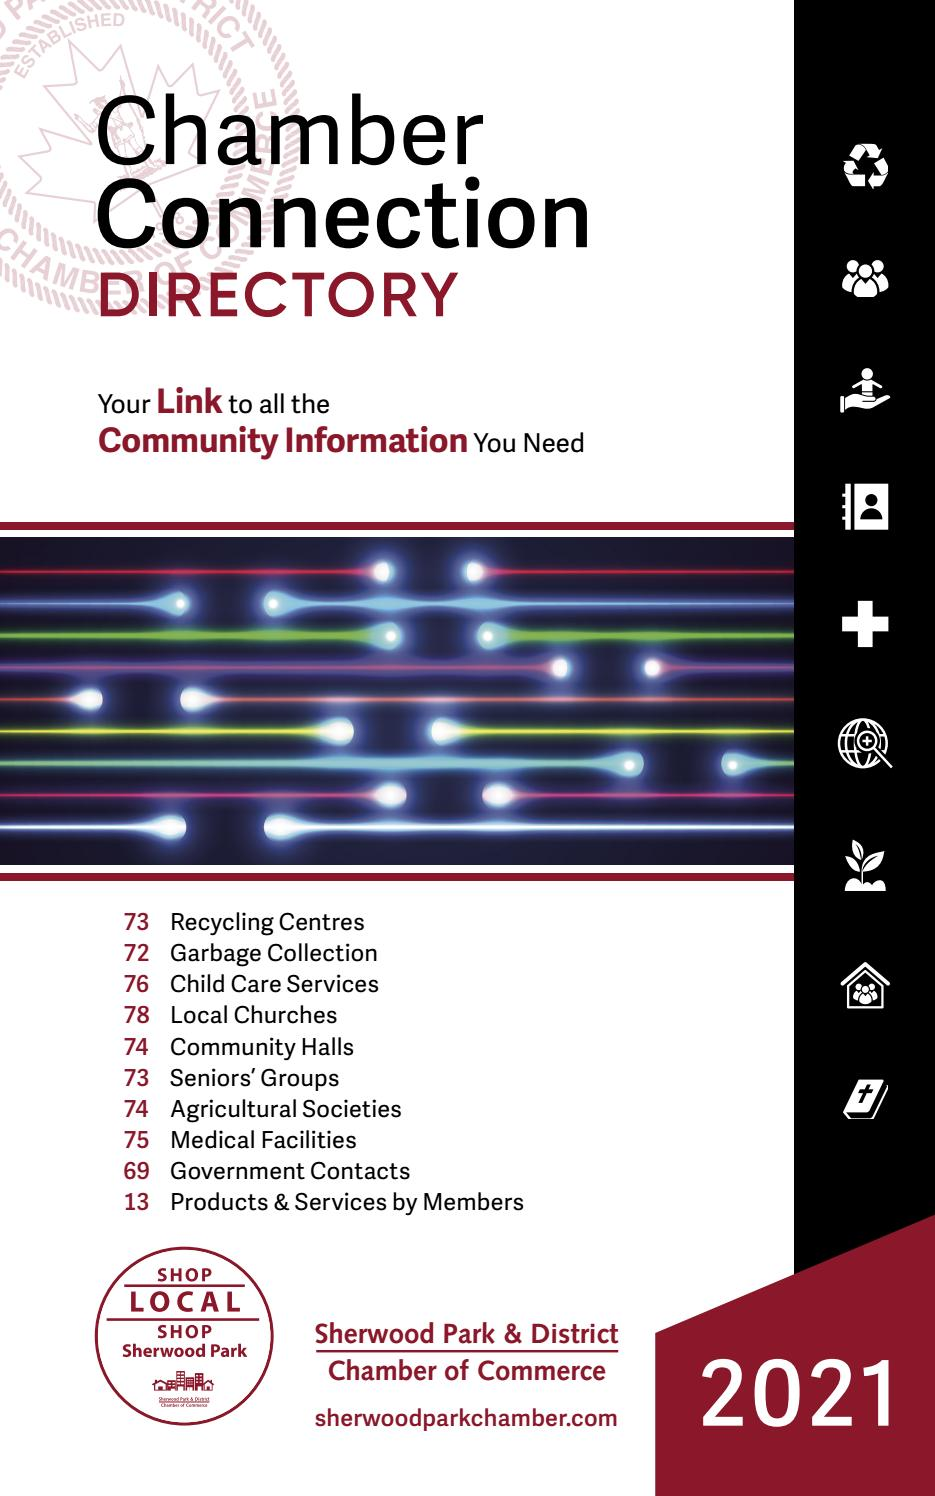 2021 Chamber Connection Directory By Sherwood Park District Chamber Of Commerce Issuu